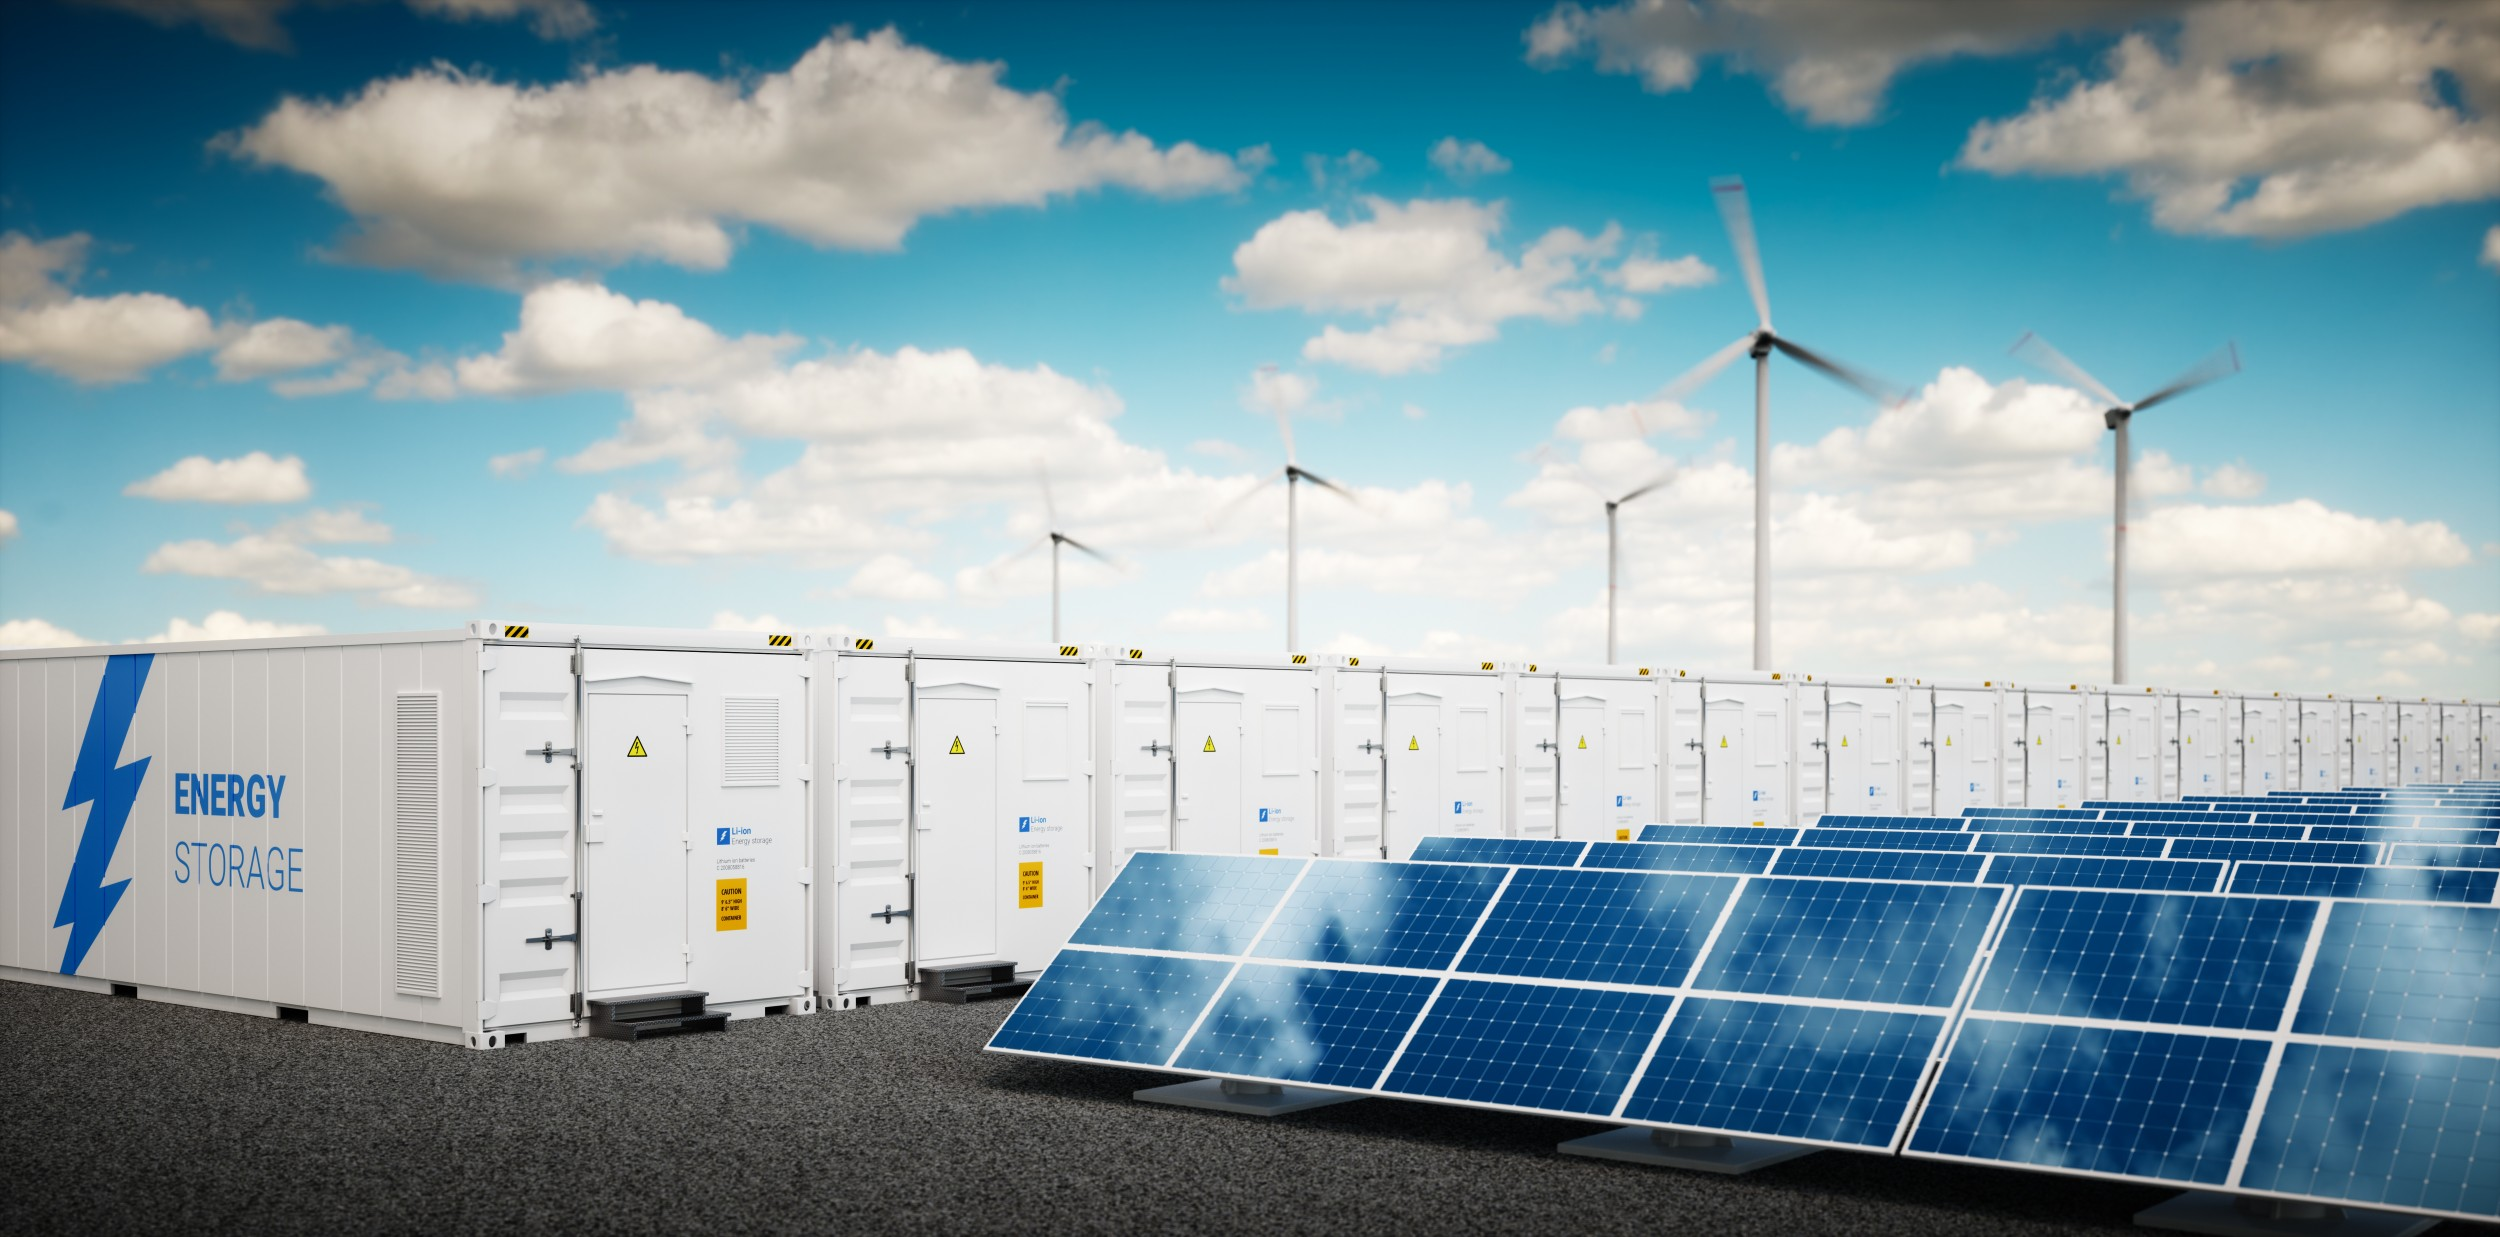 Locally generated solar or wind energy depends on local storage capacity in stationary batteries. Newly developed battery systems contribute to the optimisation of this storage.